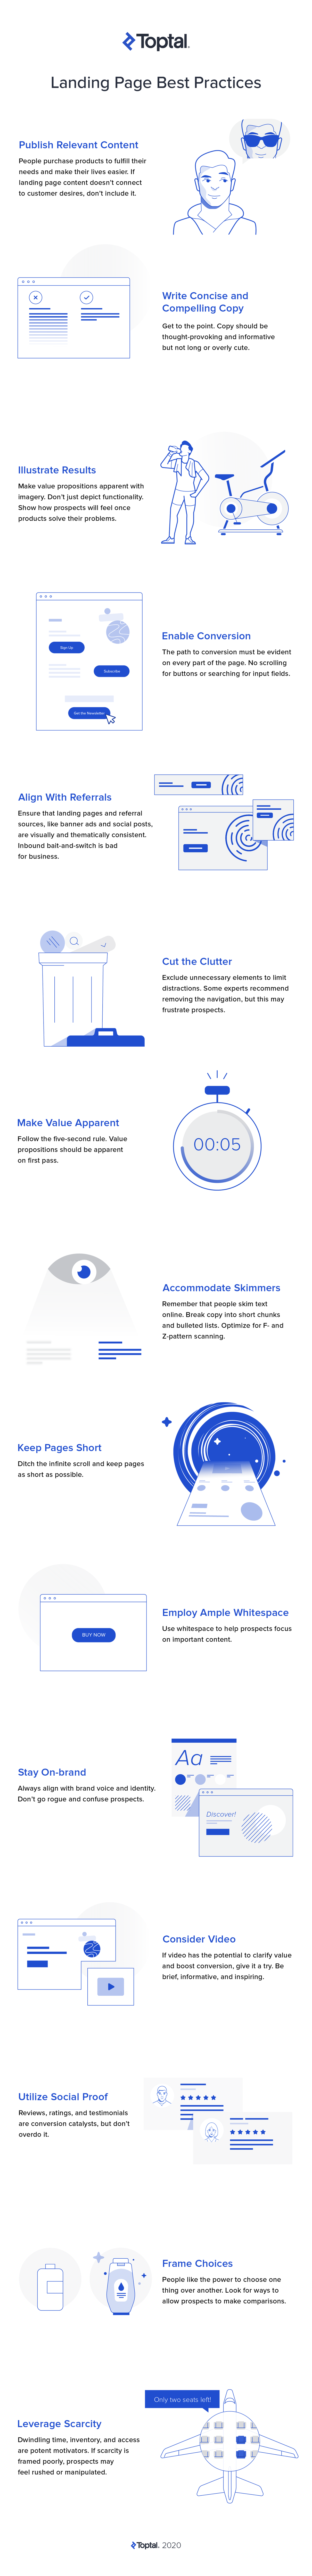 Landing page best practices infographic.